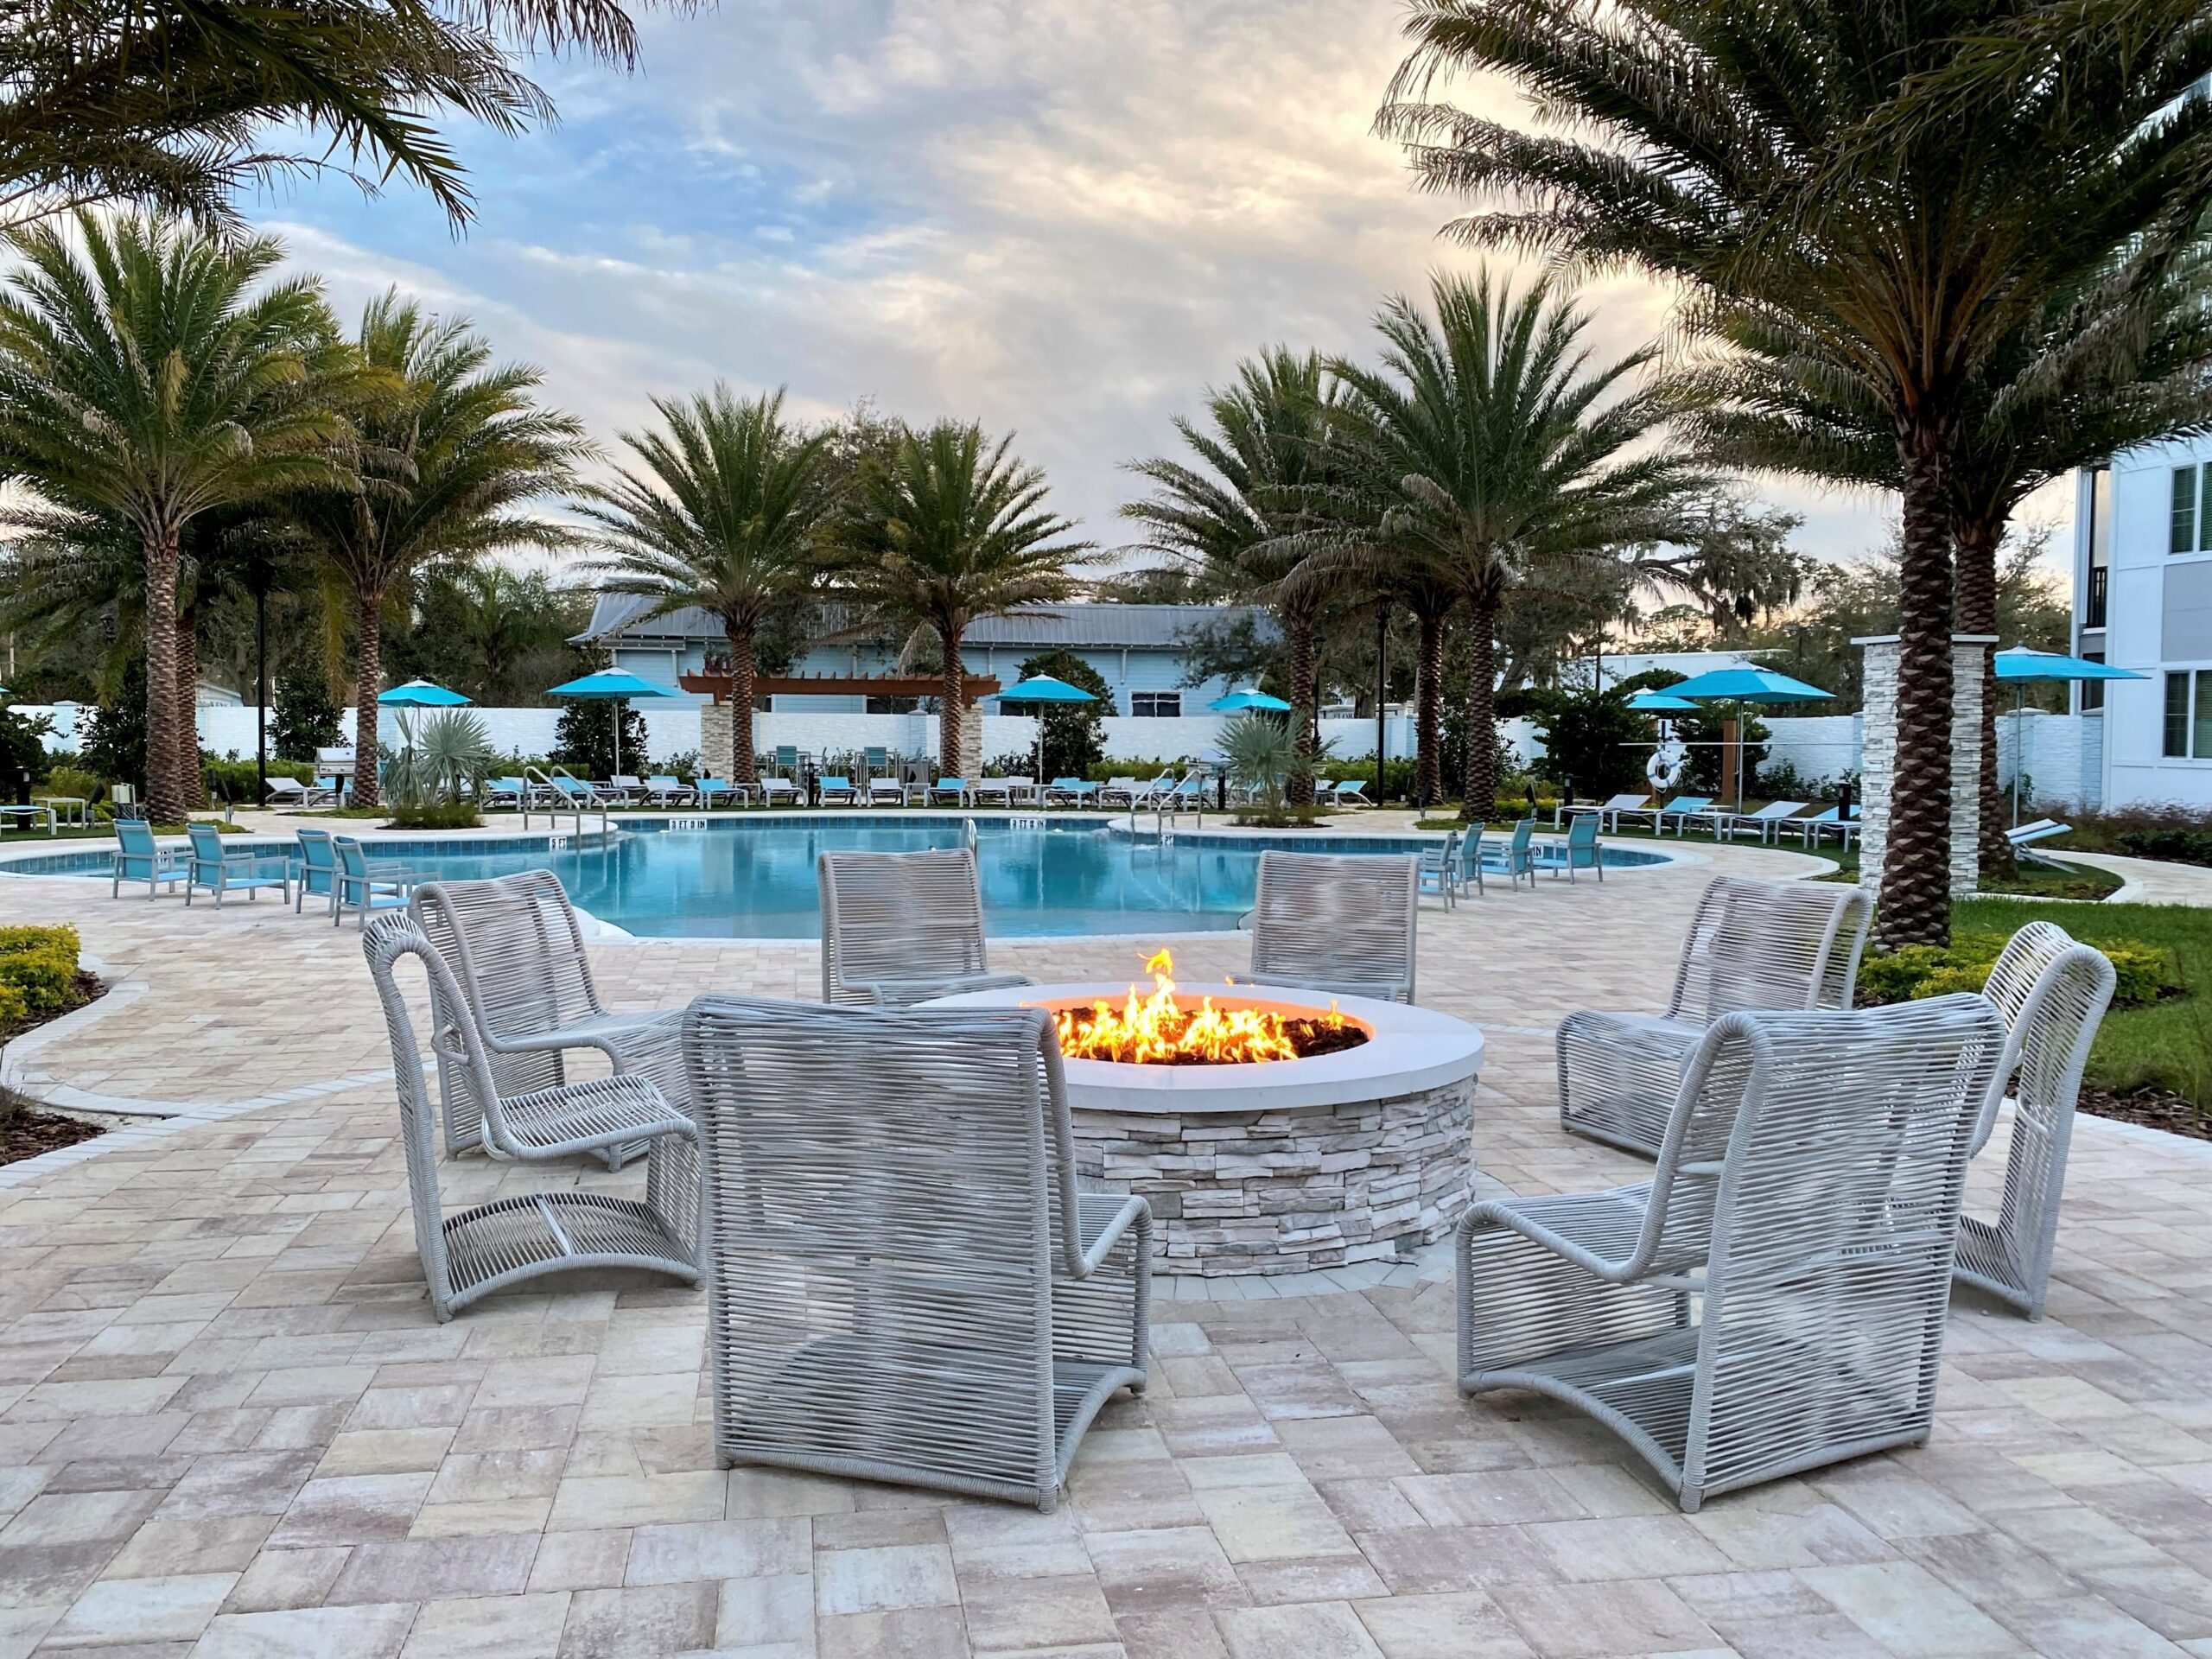 The Enclave at 3230 brand new apartments in South Daytona Florida fire pit and pool area